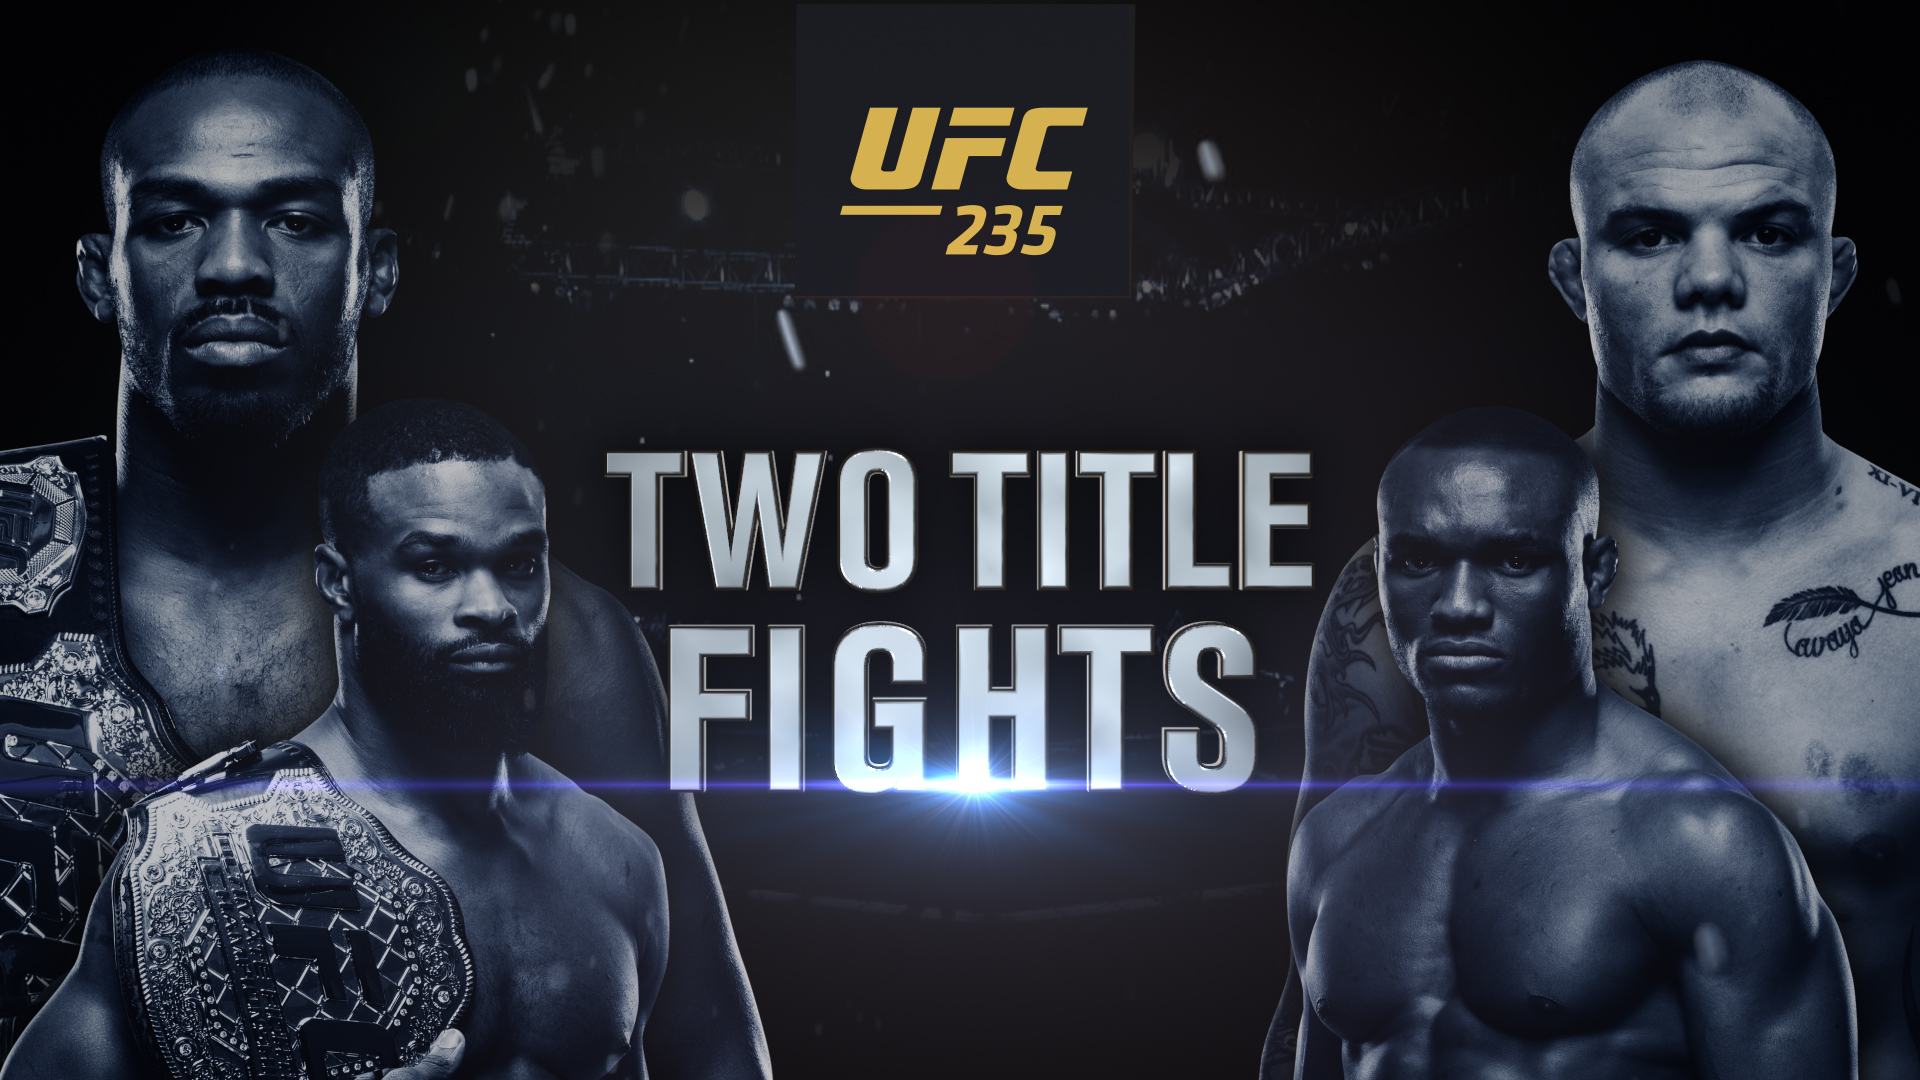 UFC 235 Two Title Fights UFC 1920x1080